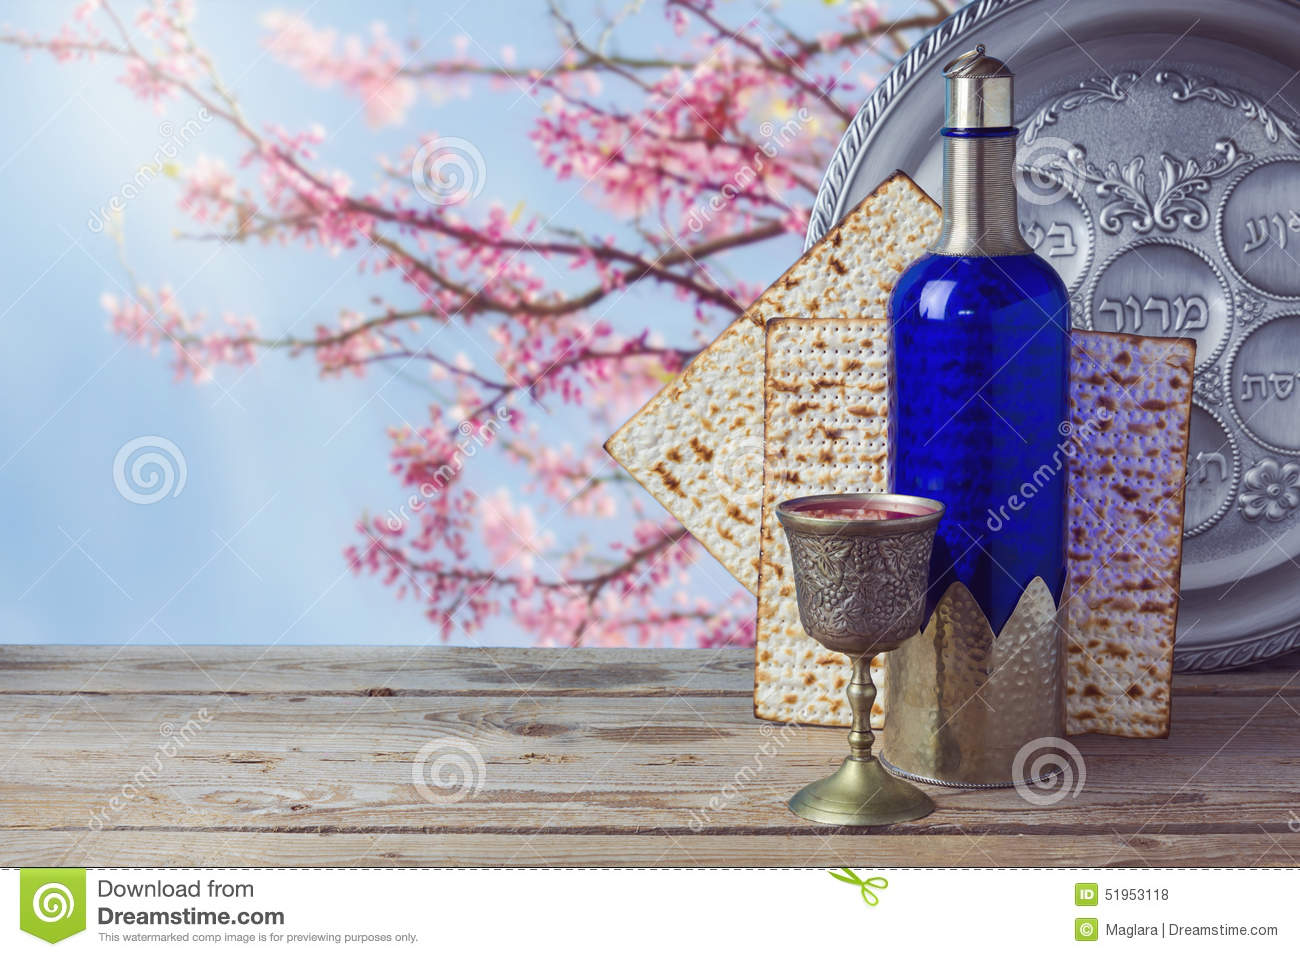 Passover matzo and wine on wooden vintage table over blossom tree background.